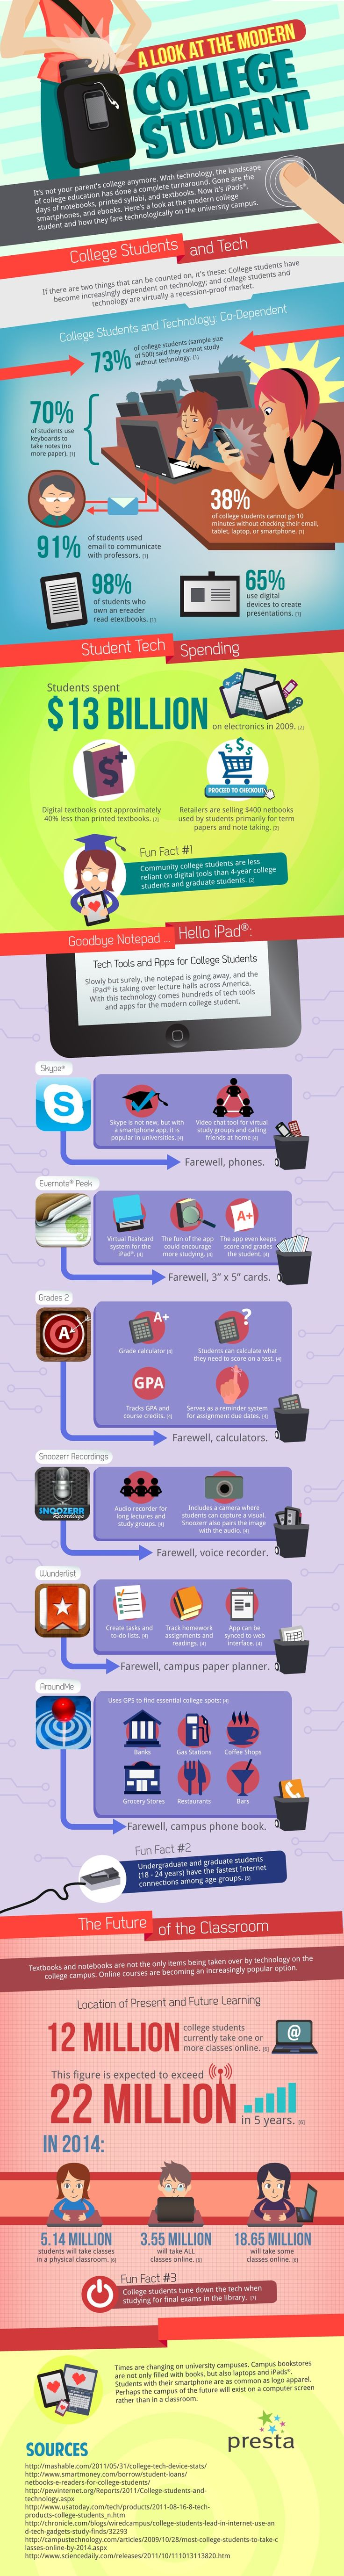 How technology has changed collegeStudy Habits, Colleges Life, Student Life, College Students, College Life, Social Media, Infographic, Colleges Student, Modern Colleges